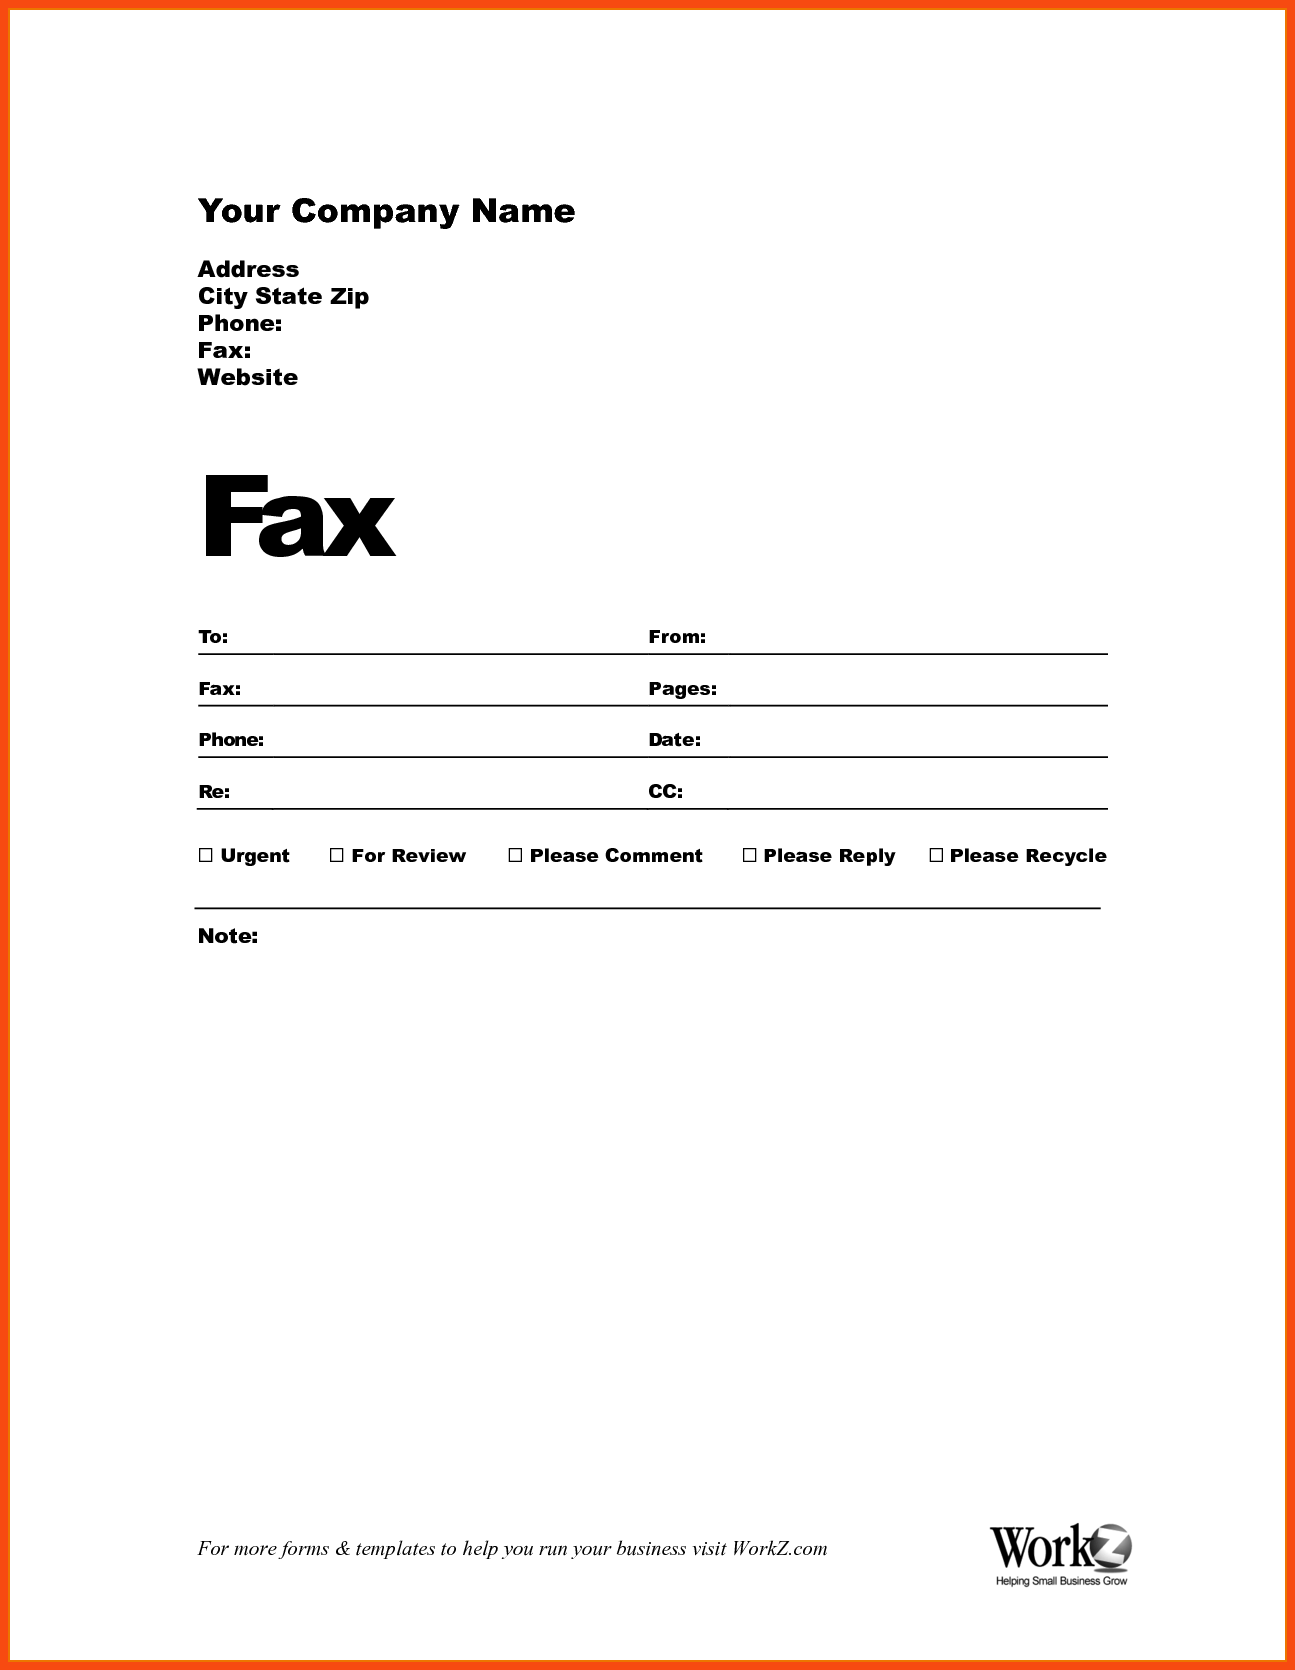 How to Fill Out a Fax Cover Sheet | Free Fax Cover Sheet Template ...